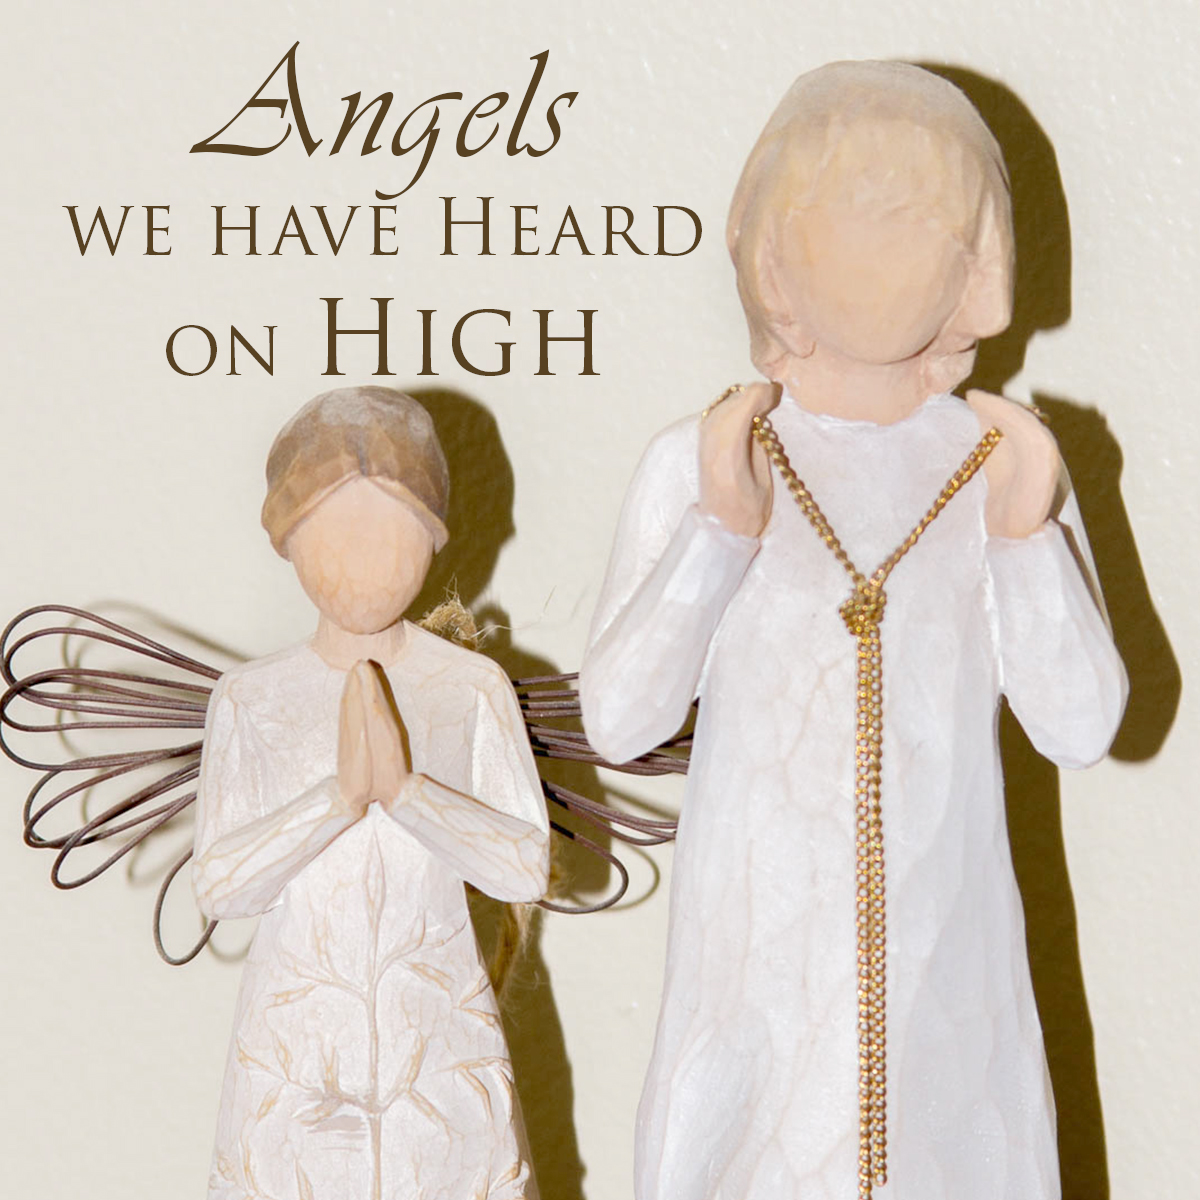 Angels We Have Heard on High, Third Day on the Third Week of Advent - 3 Quarters Today